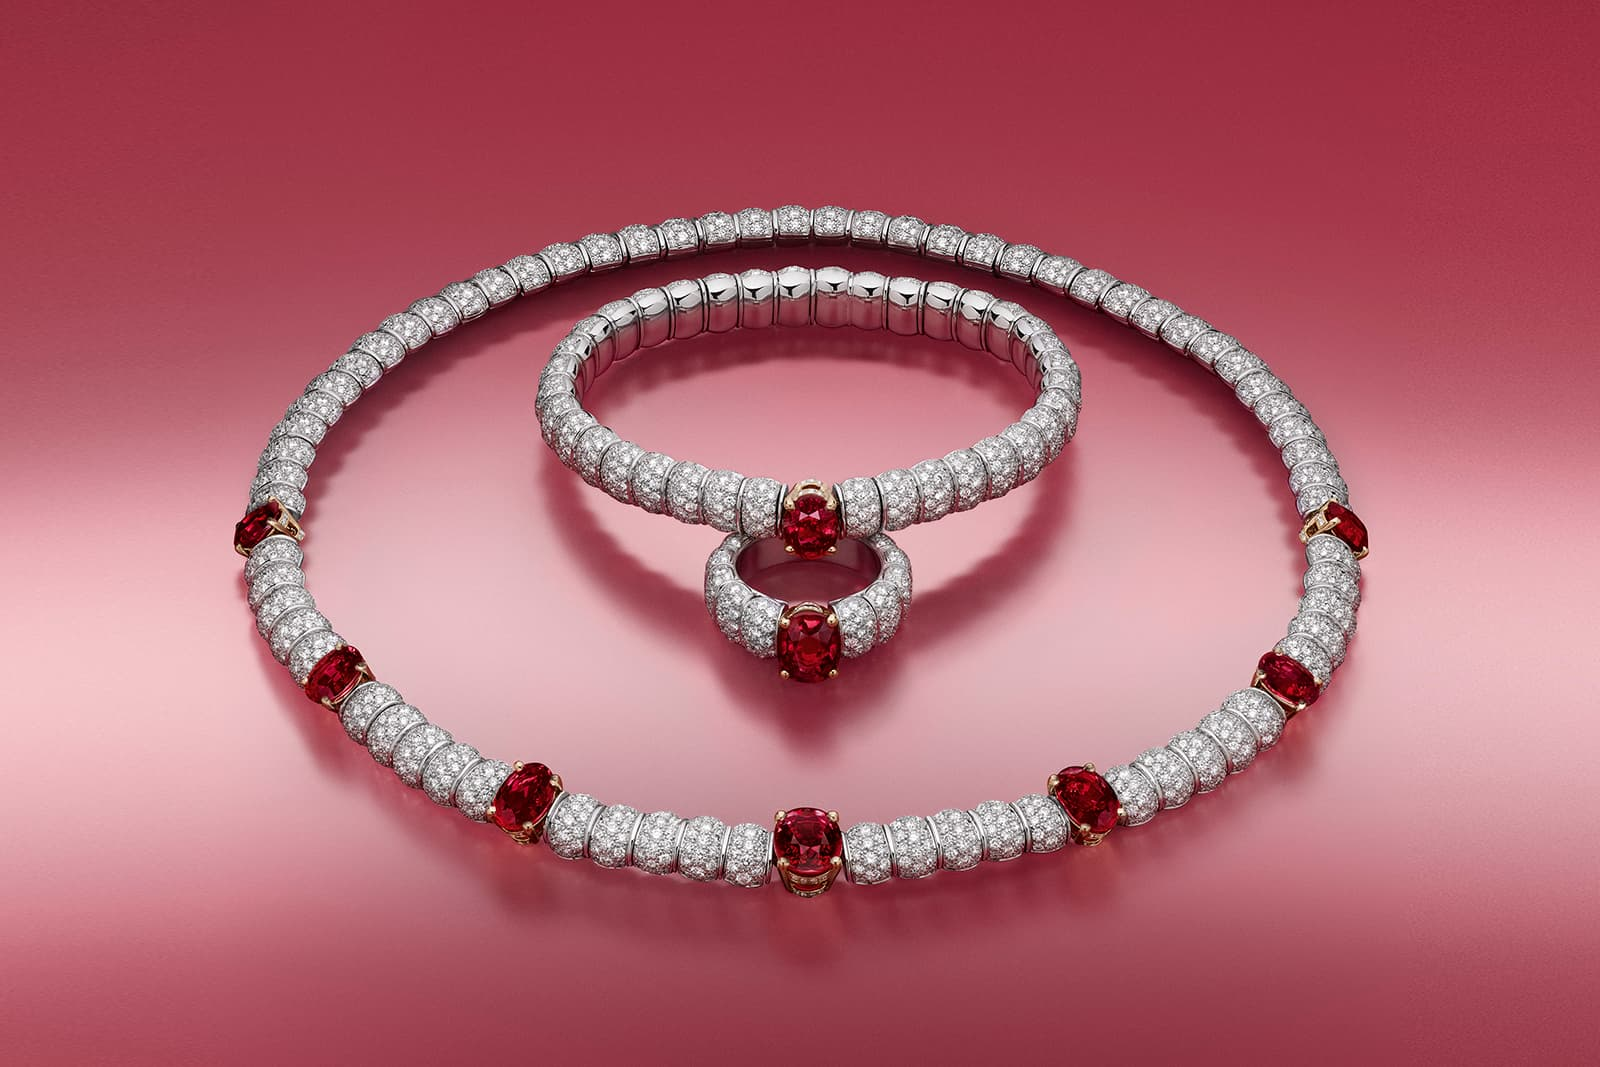 Louis Vuitton Stellar Times Astre Rouge ruby and diamond high jewellery necklace, bracelet and ring